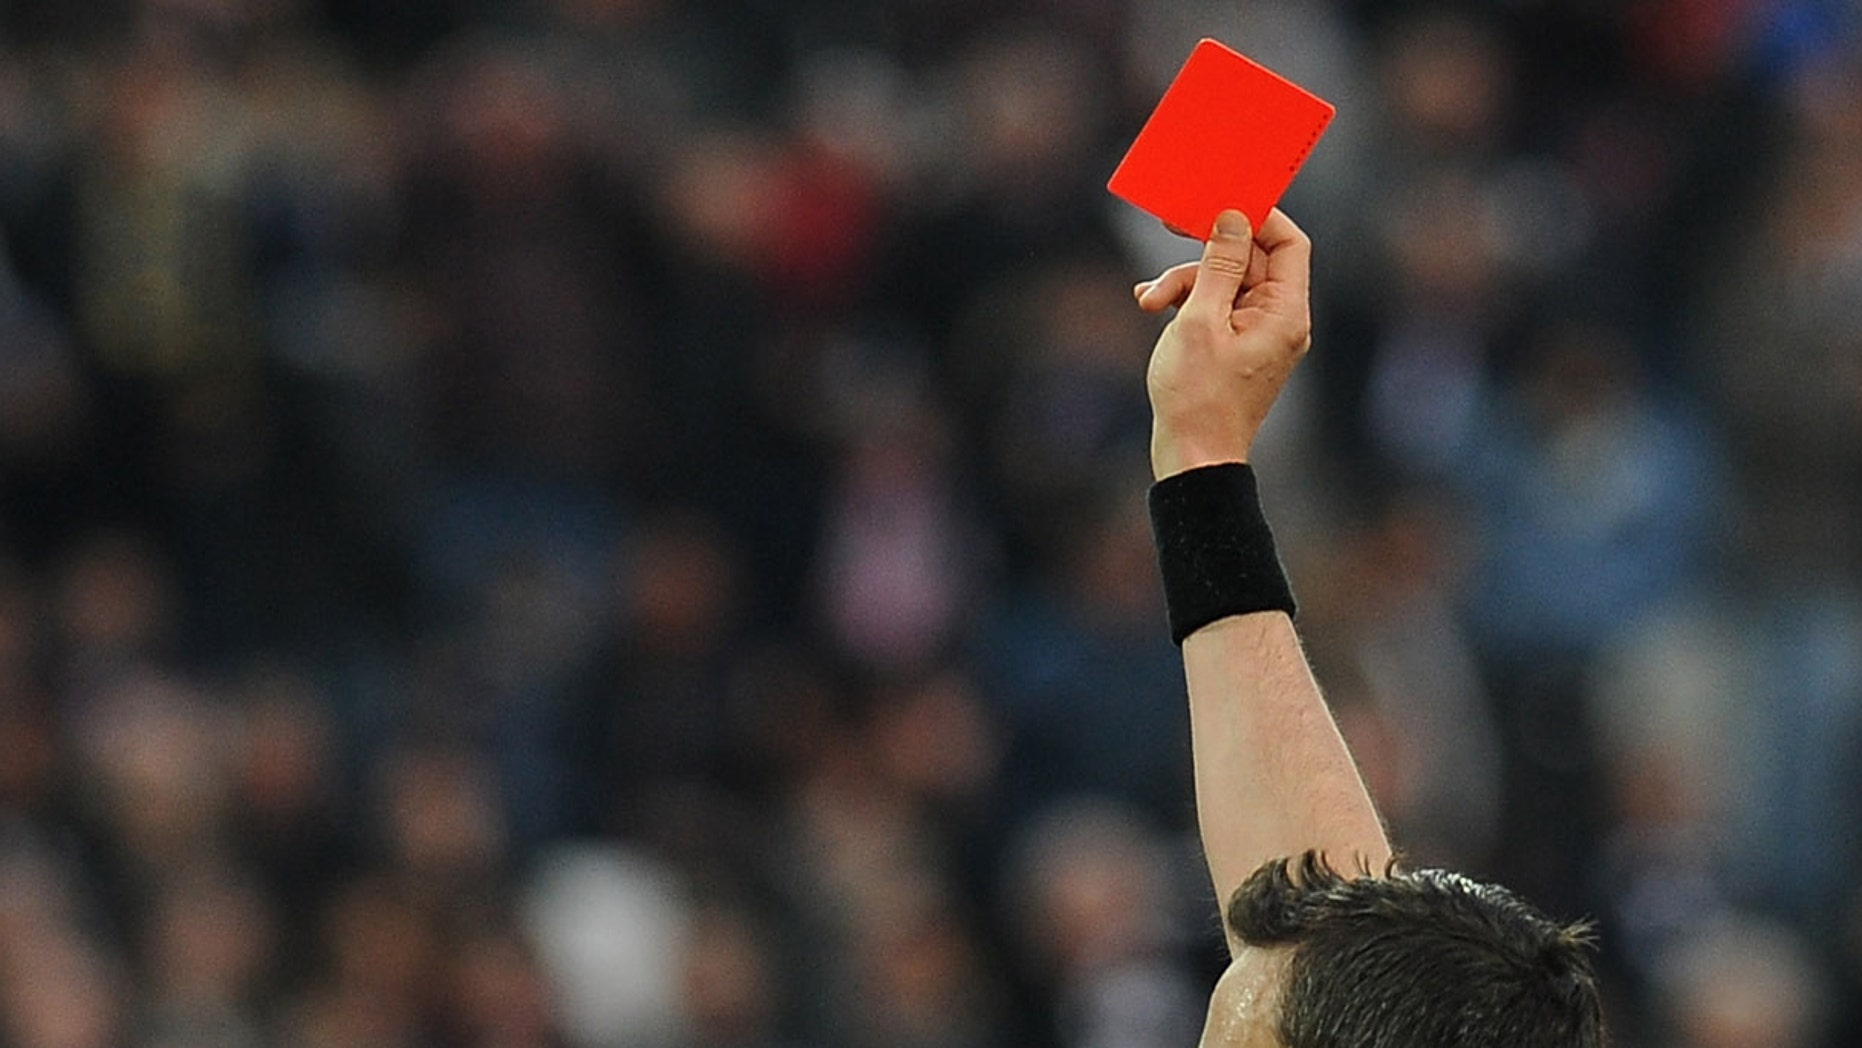 TURIN, ITALY - APRIL 06:  Giuseppe Rizzo (C) of Pescara receives the red card from referee Sebastiano Peruzzo during the Serie A match between Juventus and Pescara at Juventus Arena on April 6, 2013 in Turin, Italy.  (Photo by Valerio Pennicino/Getty Images)